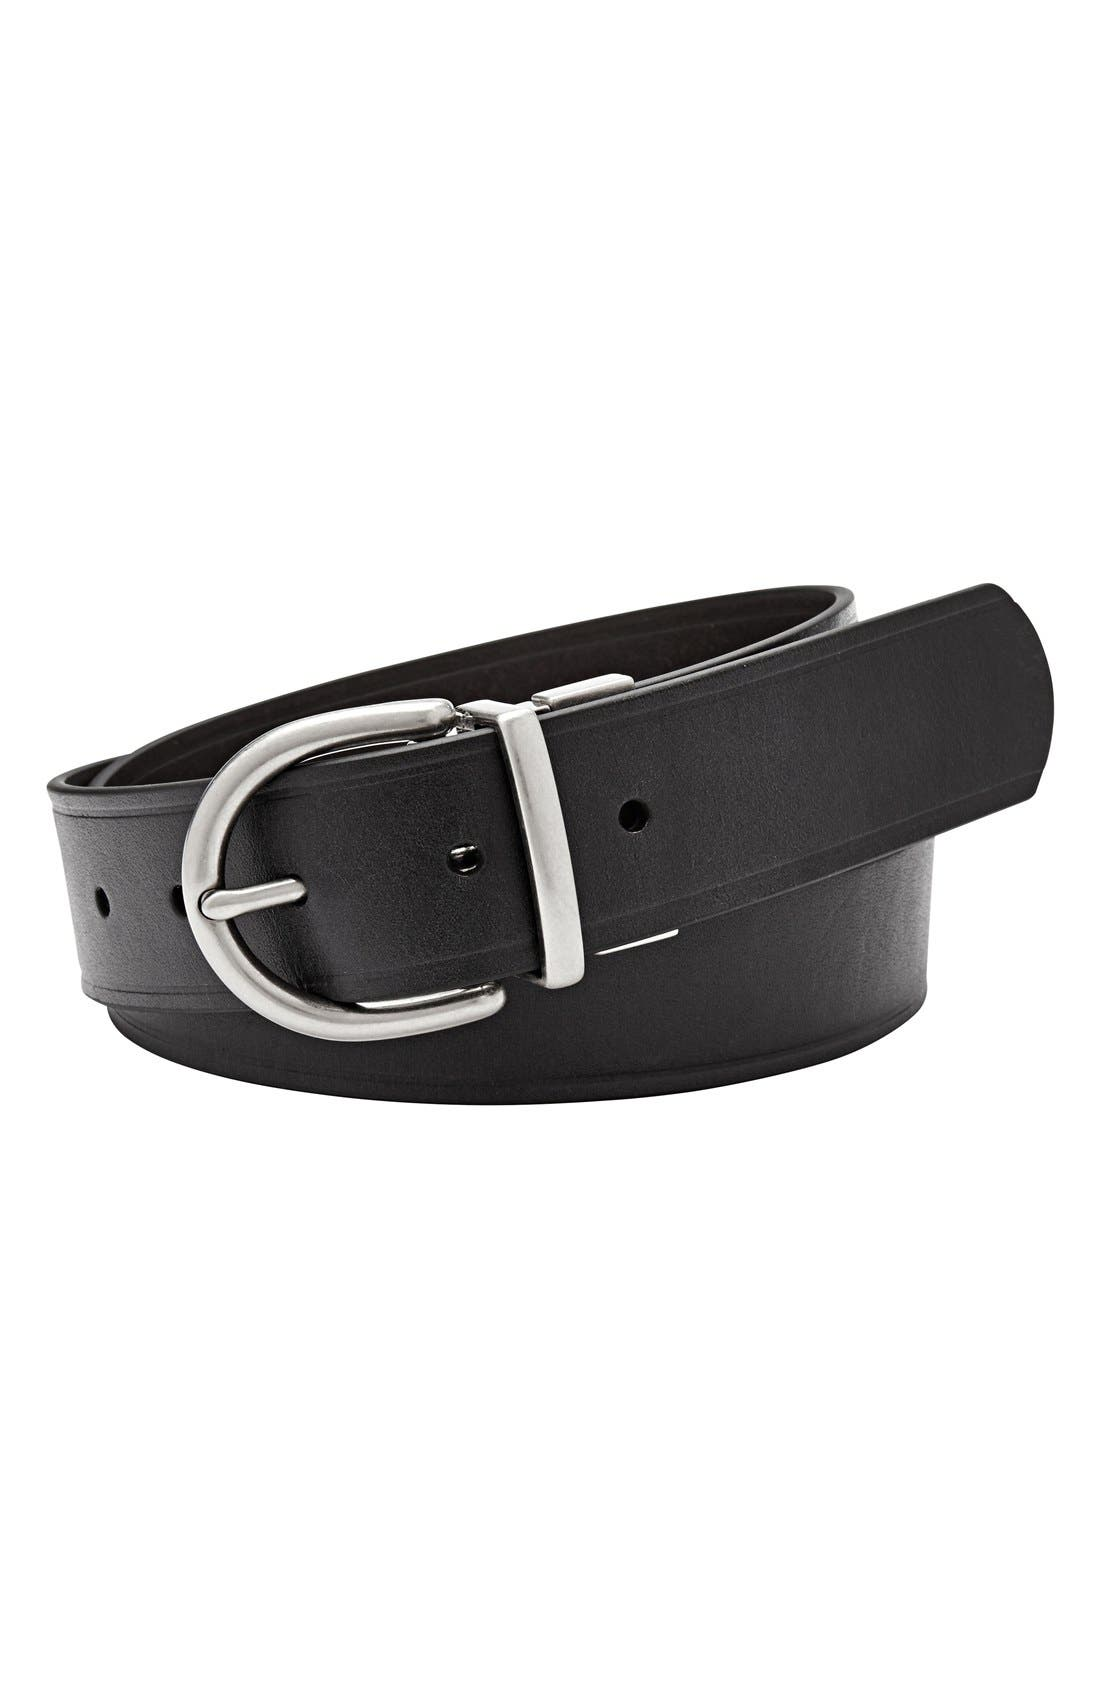 Alternate Image 1 Selected - Fossil Reversible Metal Keeper Leather Belt